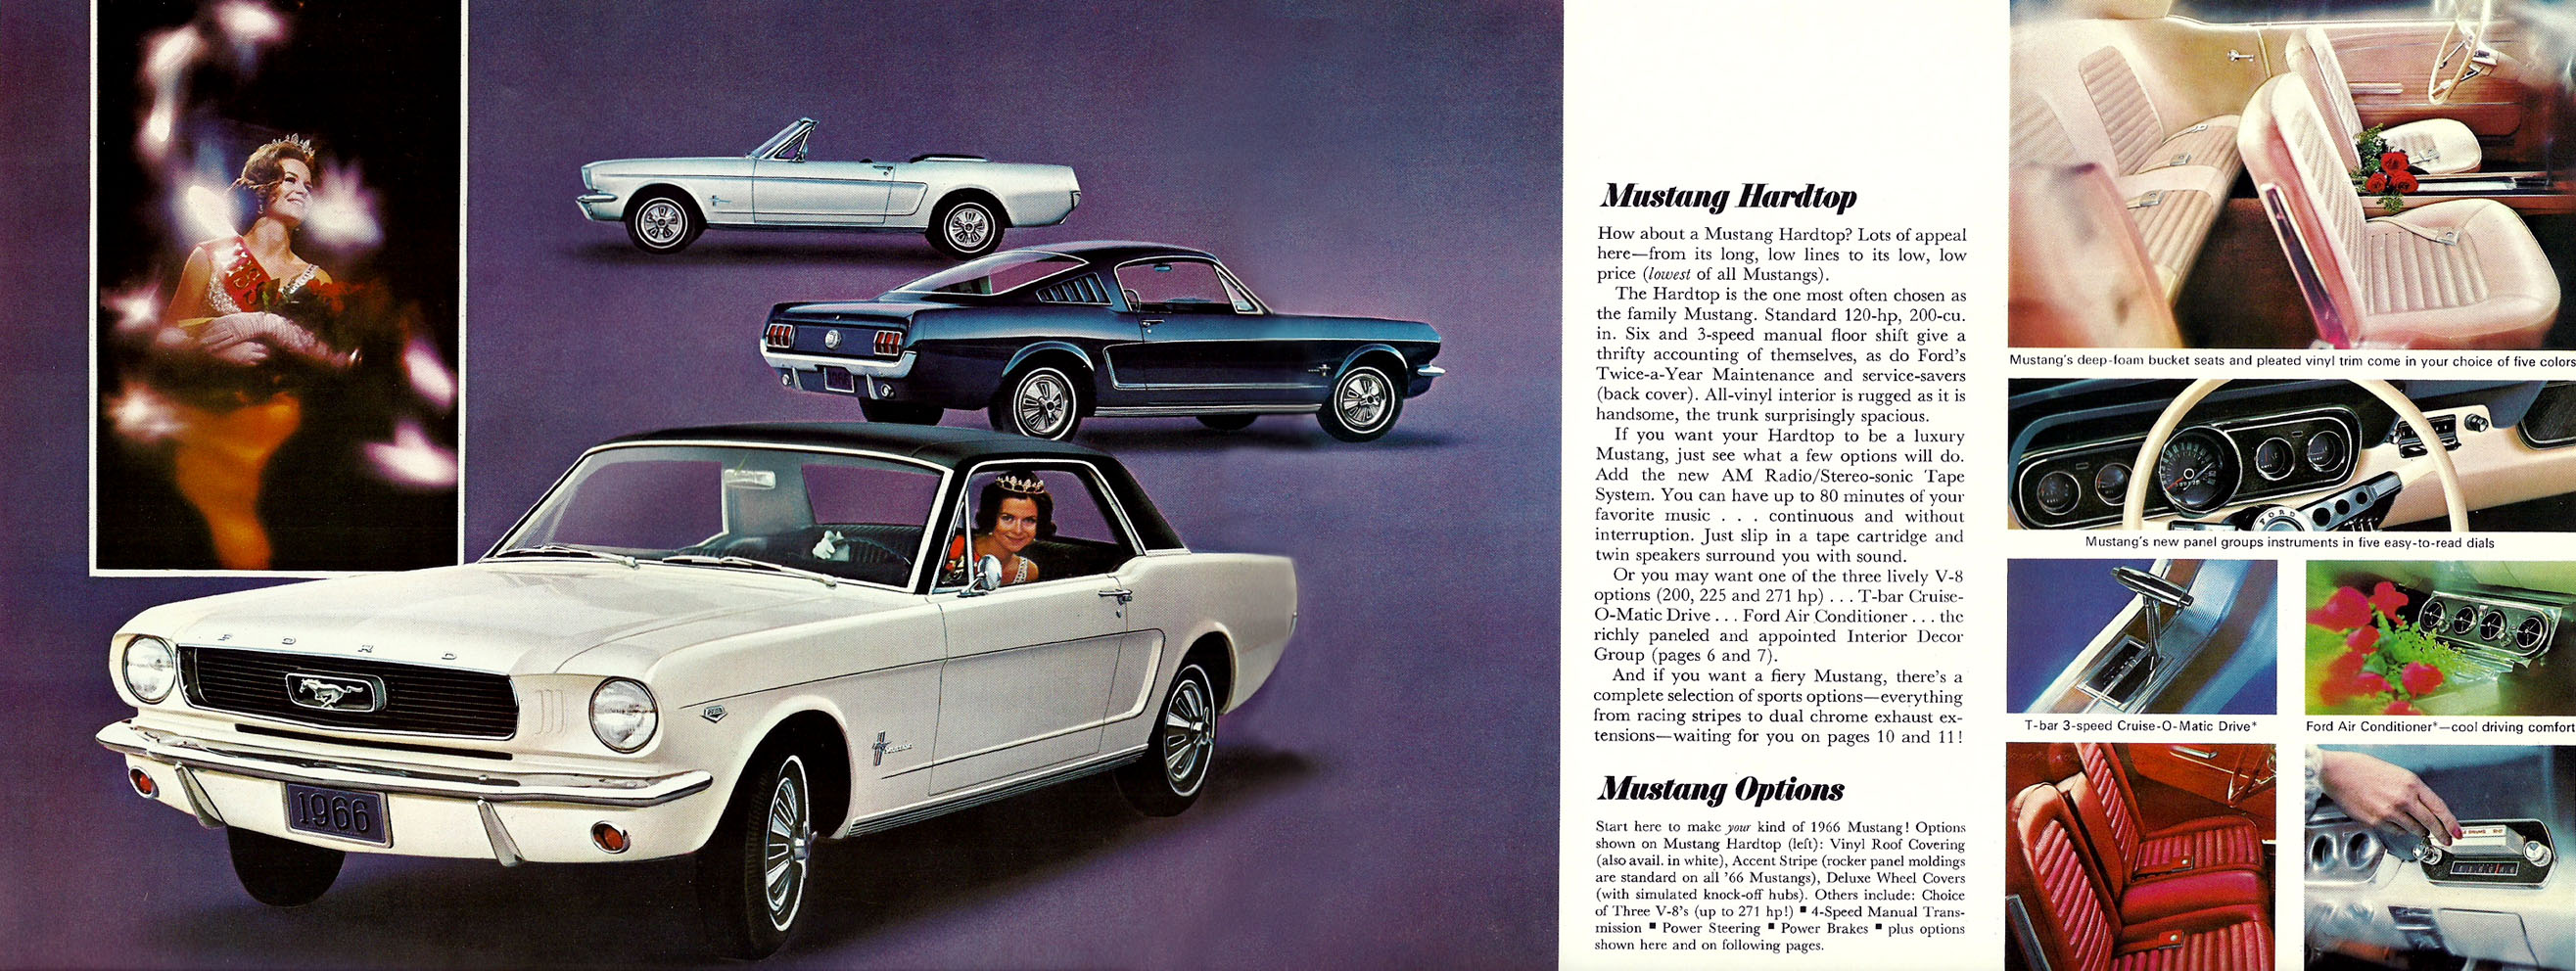 Image 1966 Ford Mustang 1966 Ford Mustang 04 05